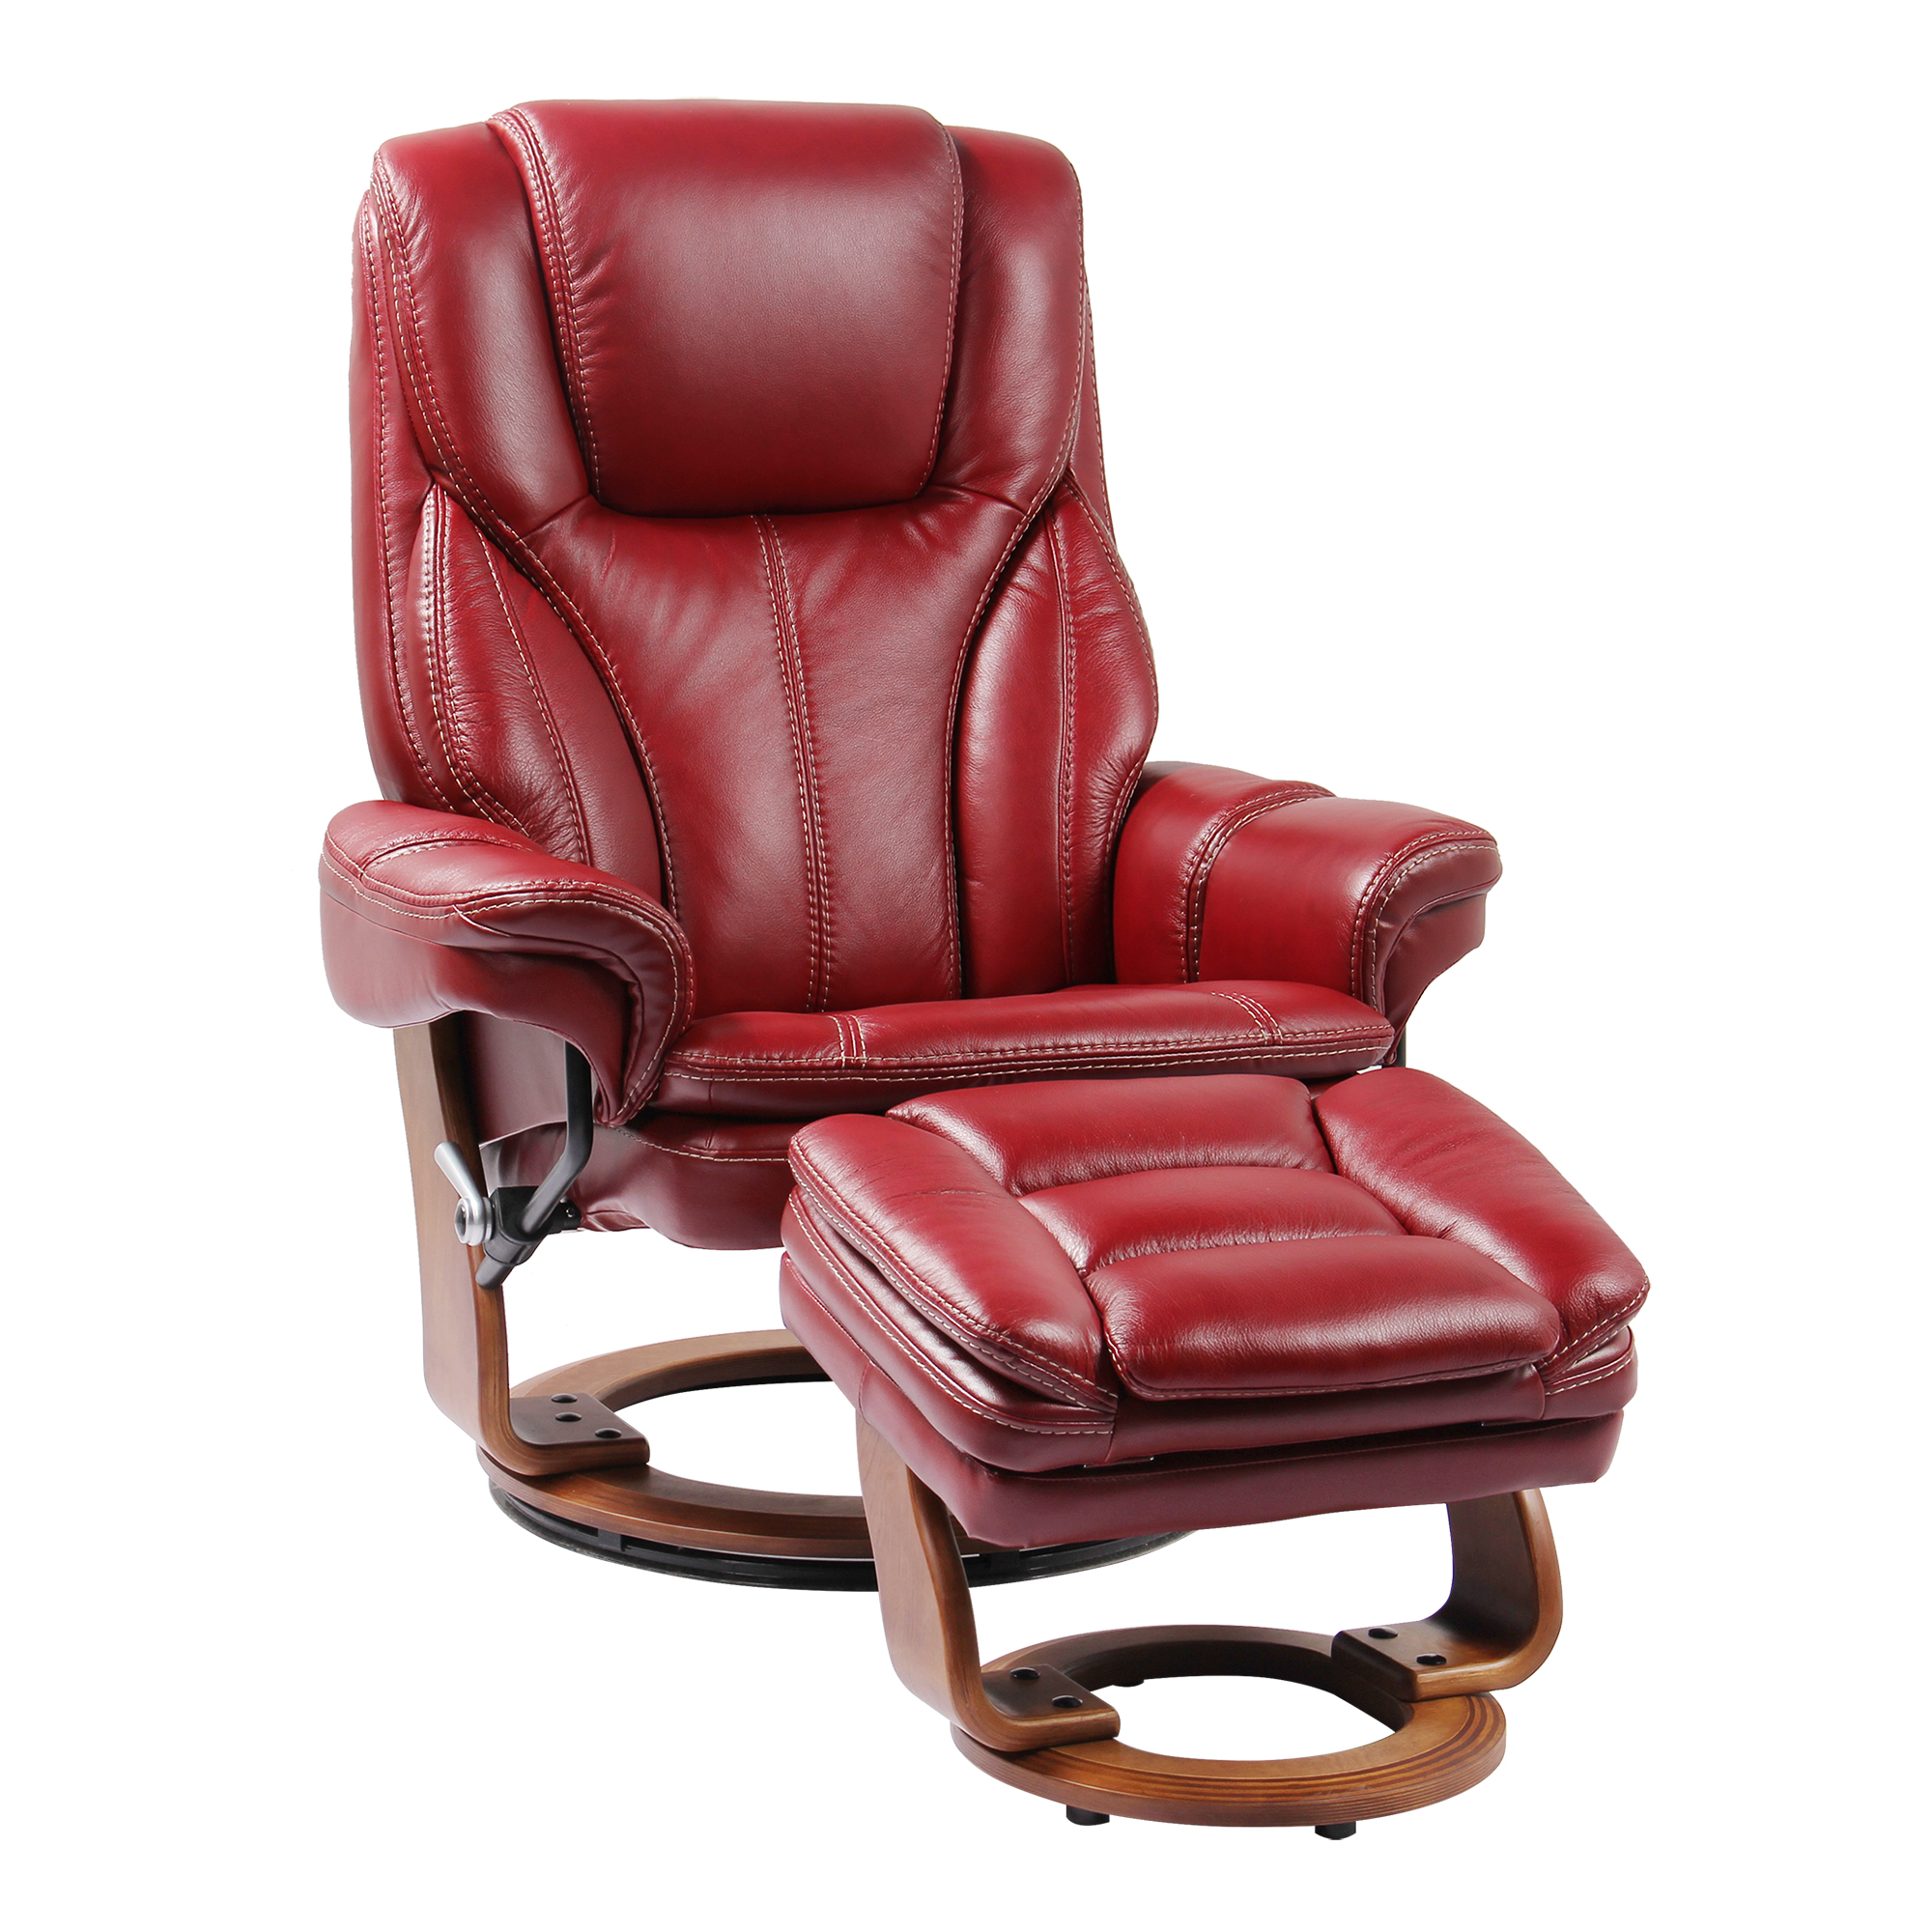 recliner vs chair with ottoman cover rentals in kansas city mo stress free hana reclining and comfort